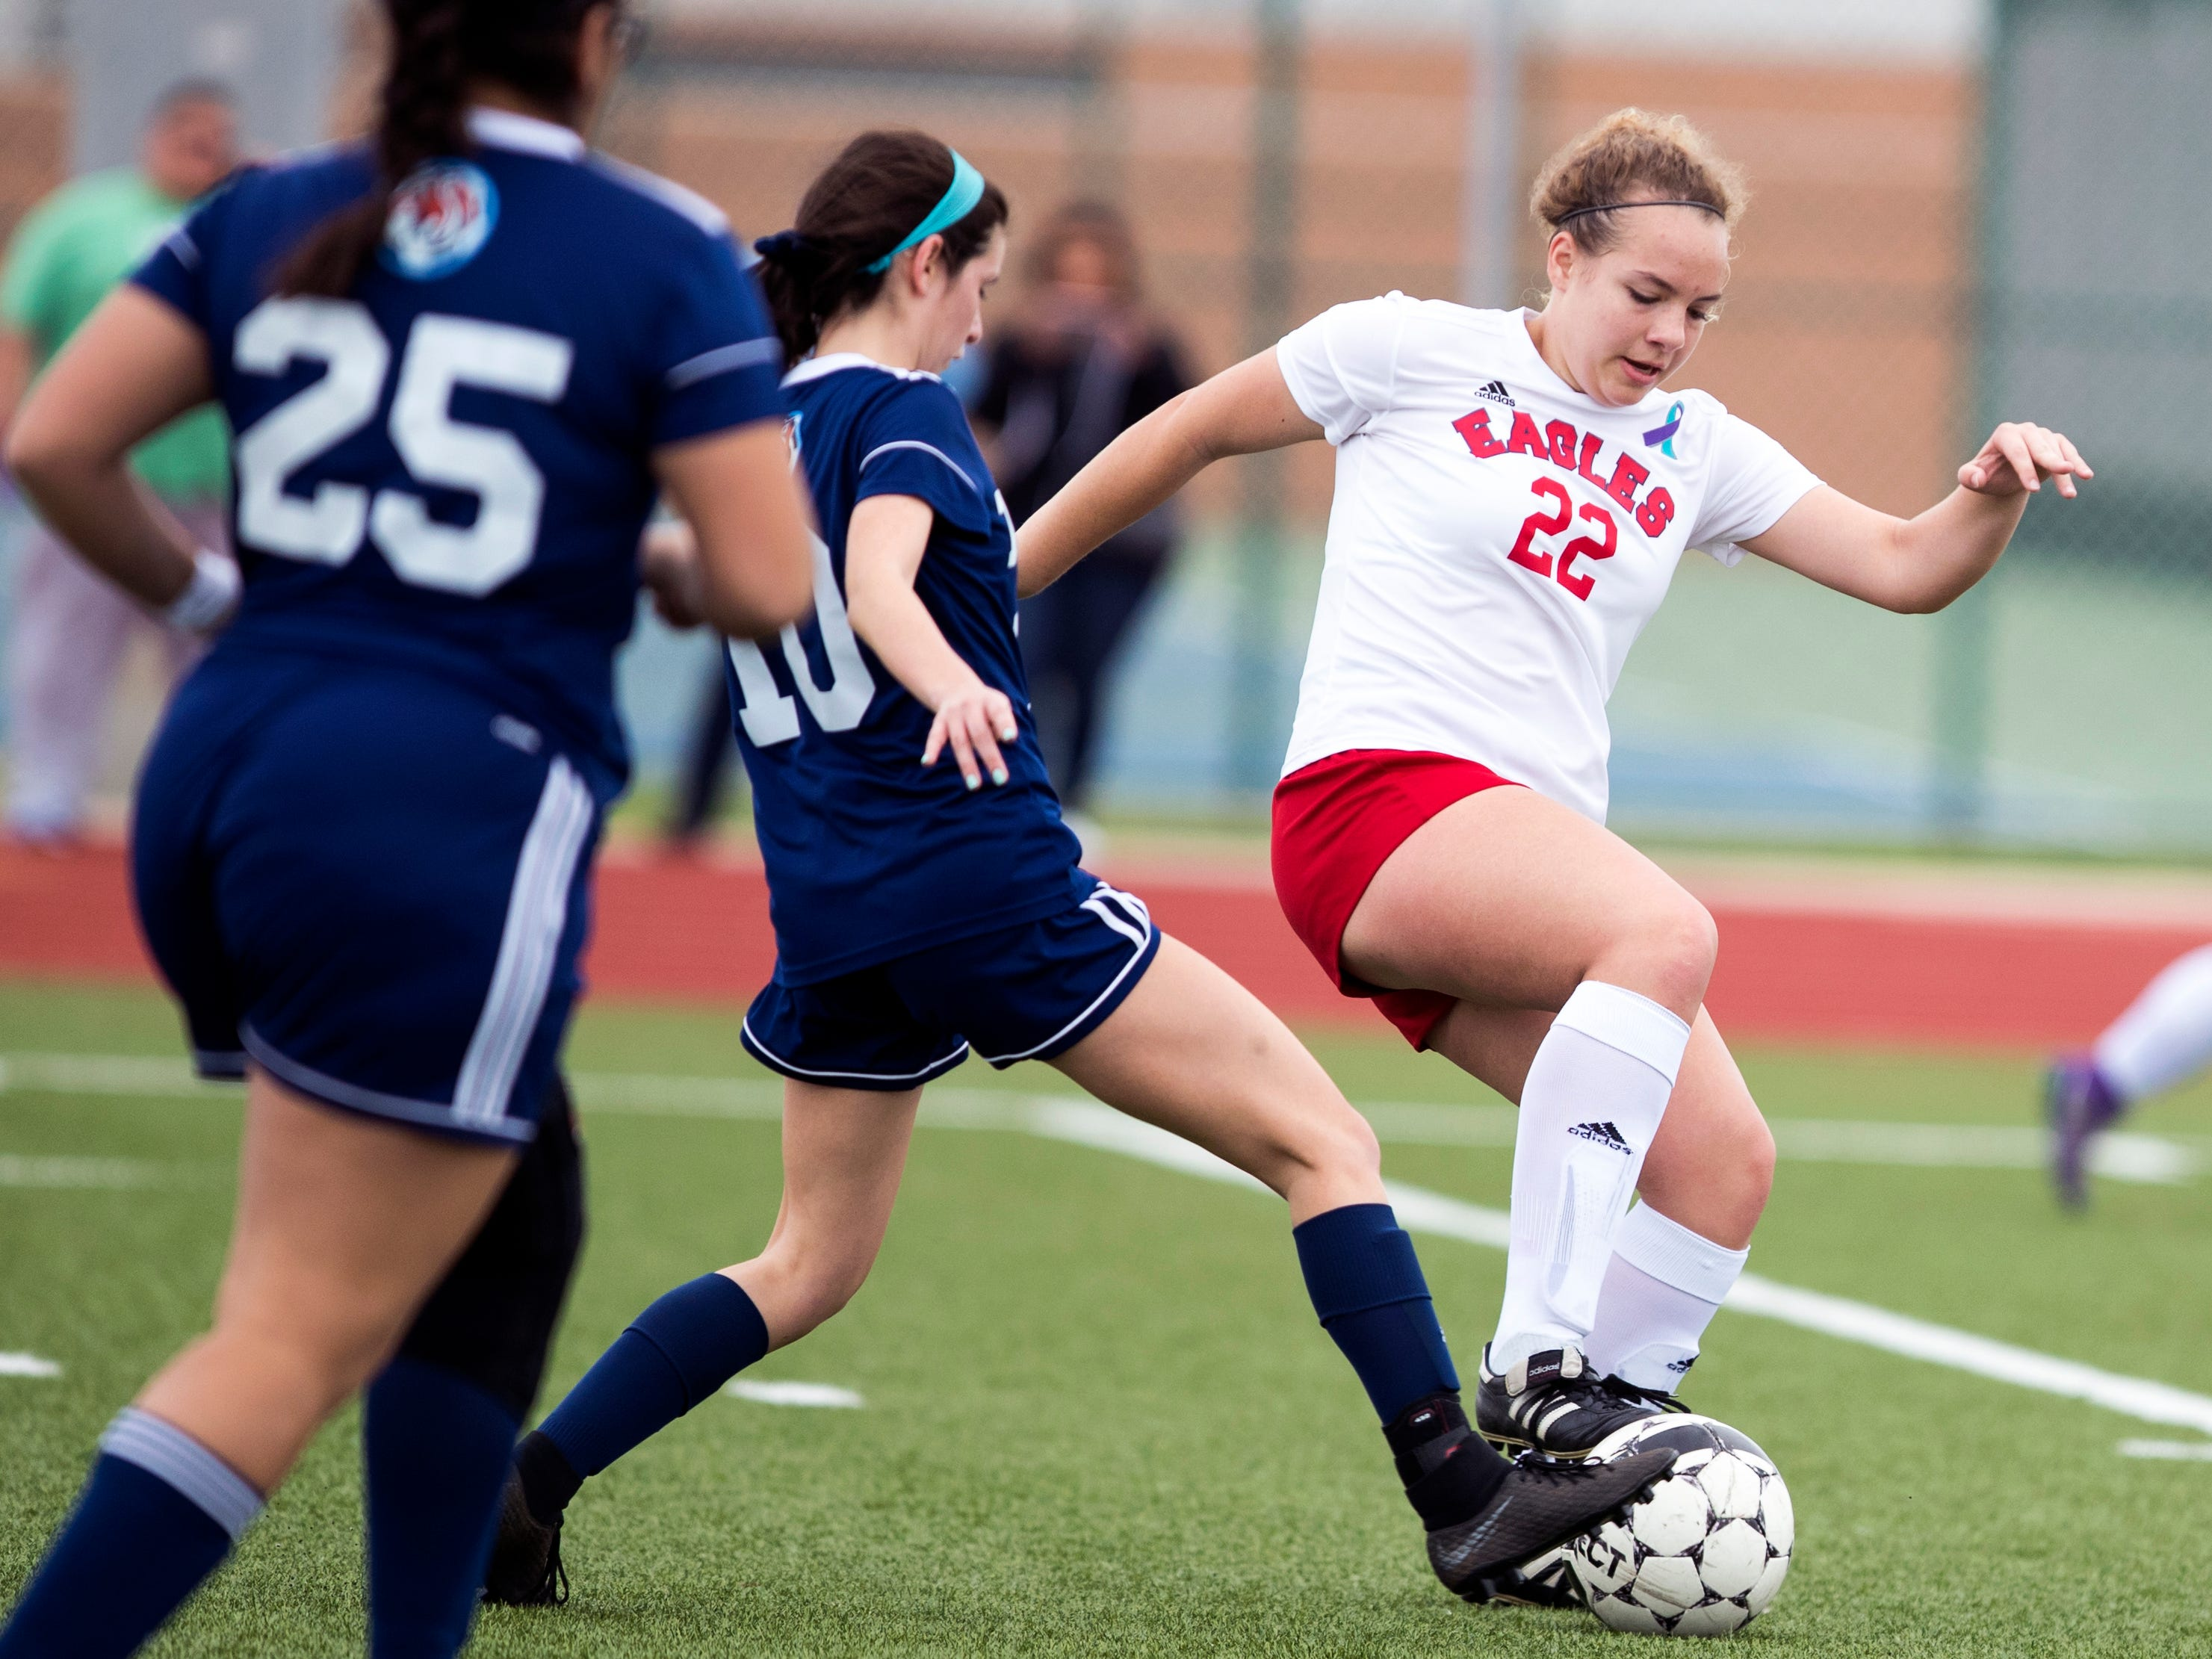 Veterans Memorial's Whitney Smith and Carroll's Emily Barrera (10) go after the ball in the Mira's Soccer Tournament at Veterans Memorial High School on Friday, January 11, 2019. The Eagles won the game 5-0.